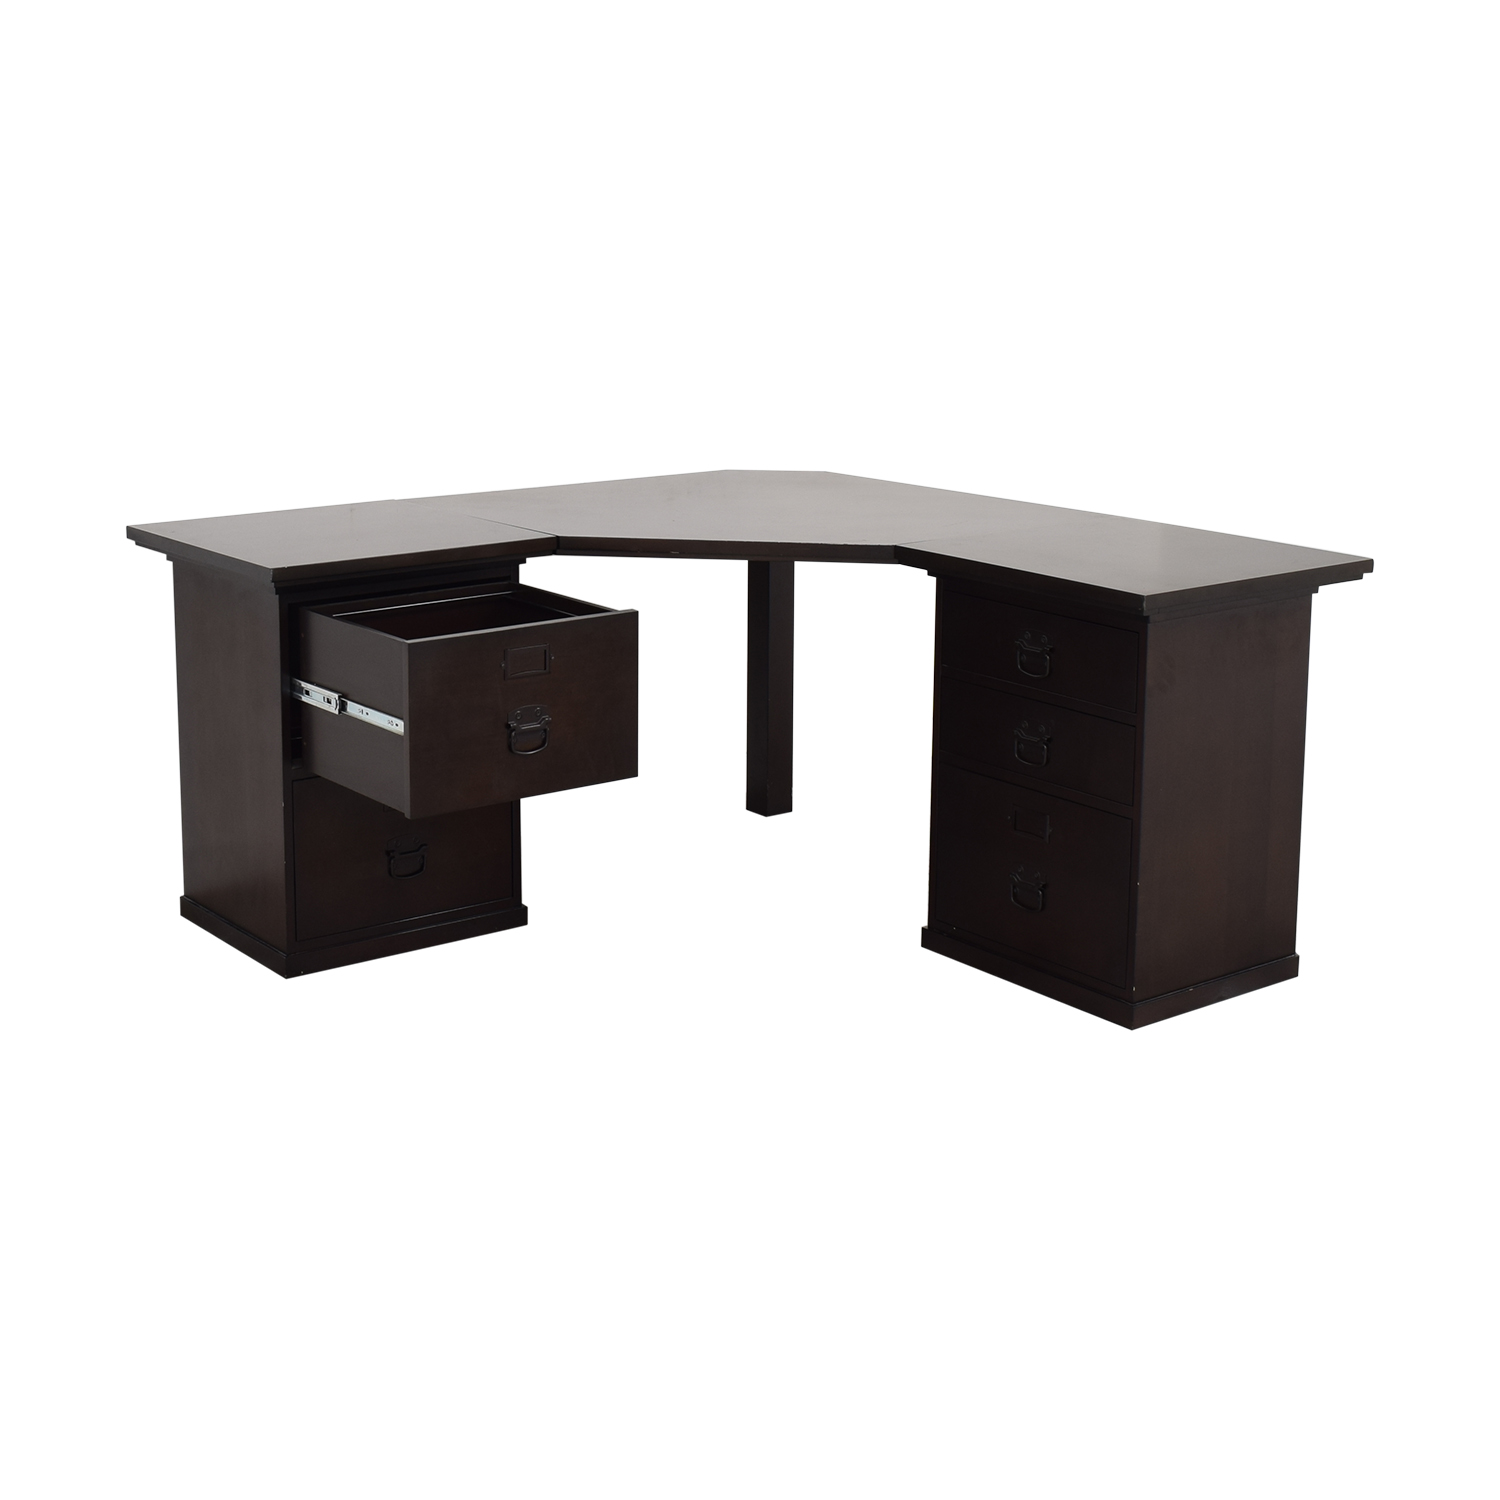 West Elm West Elm Corner Desk used